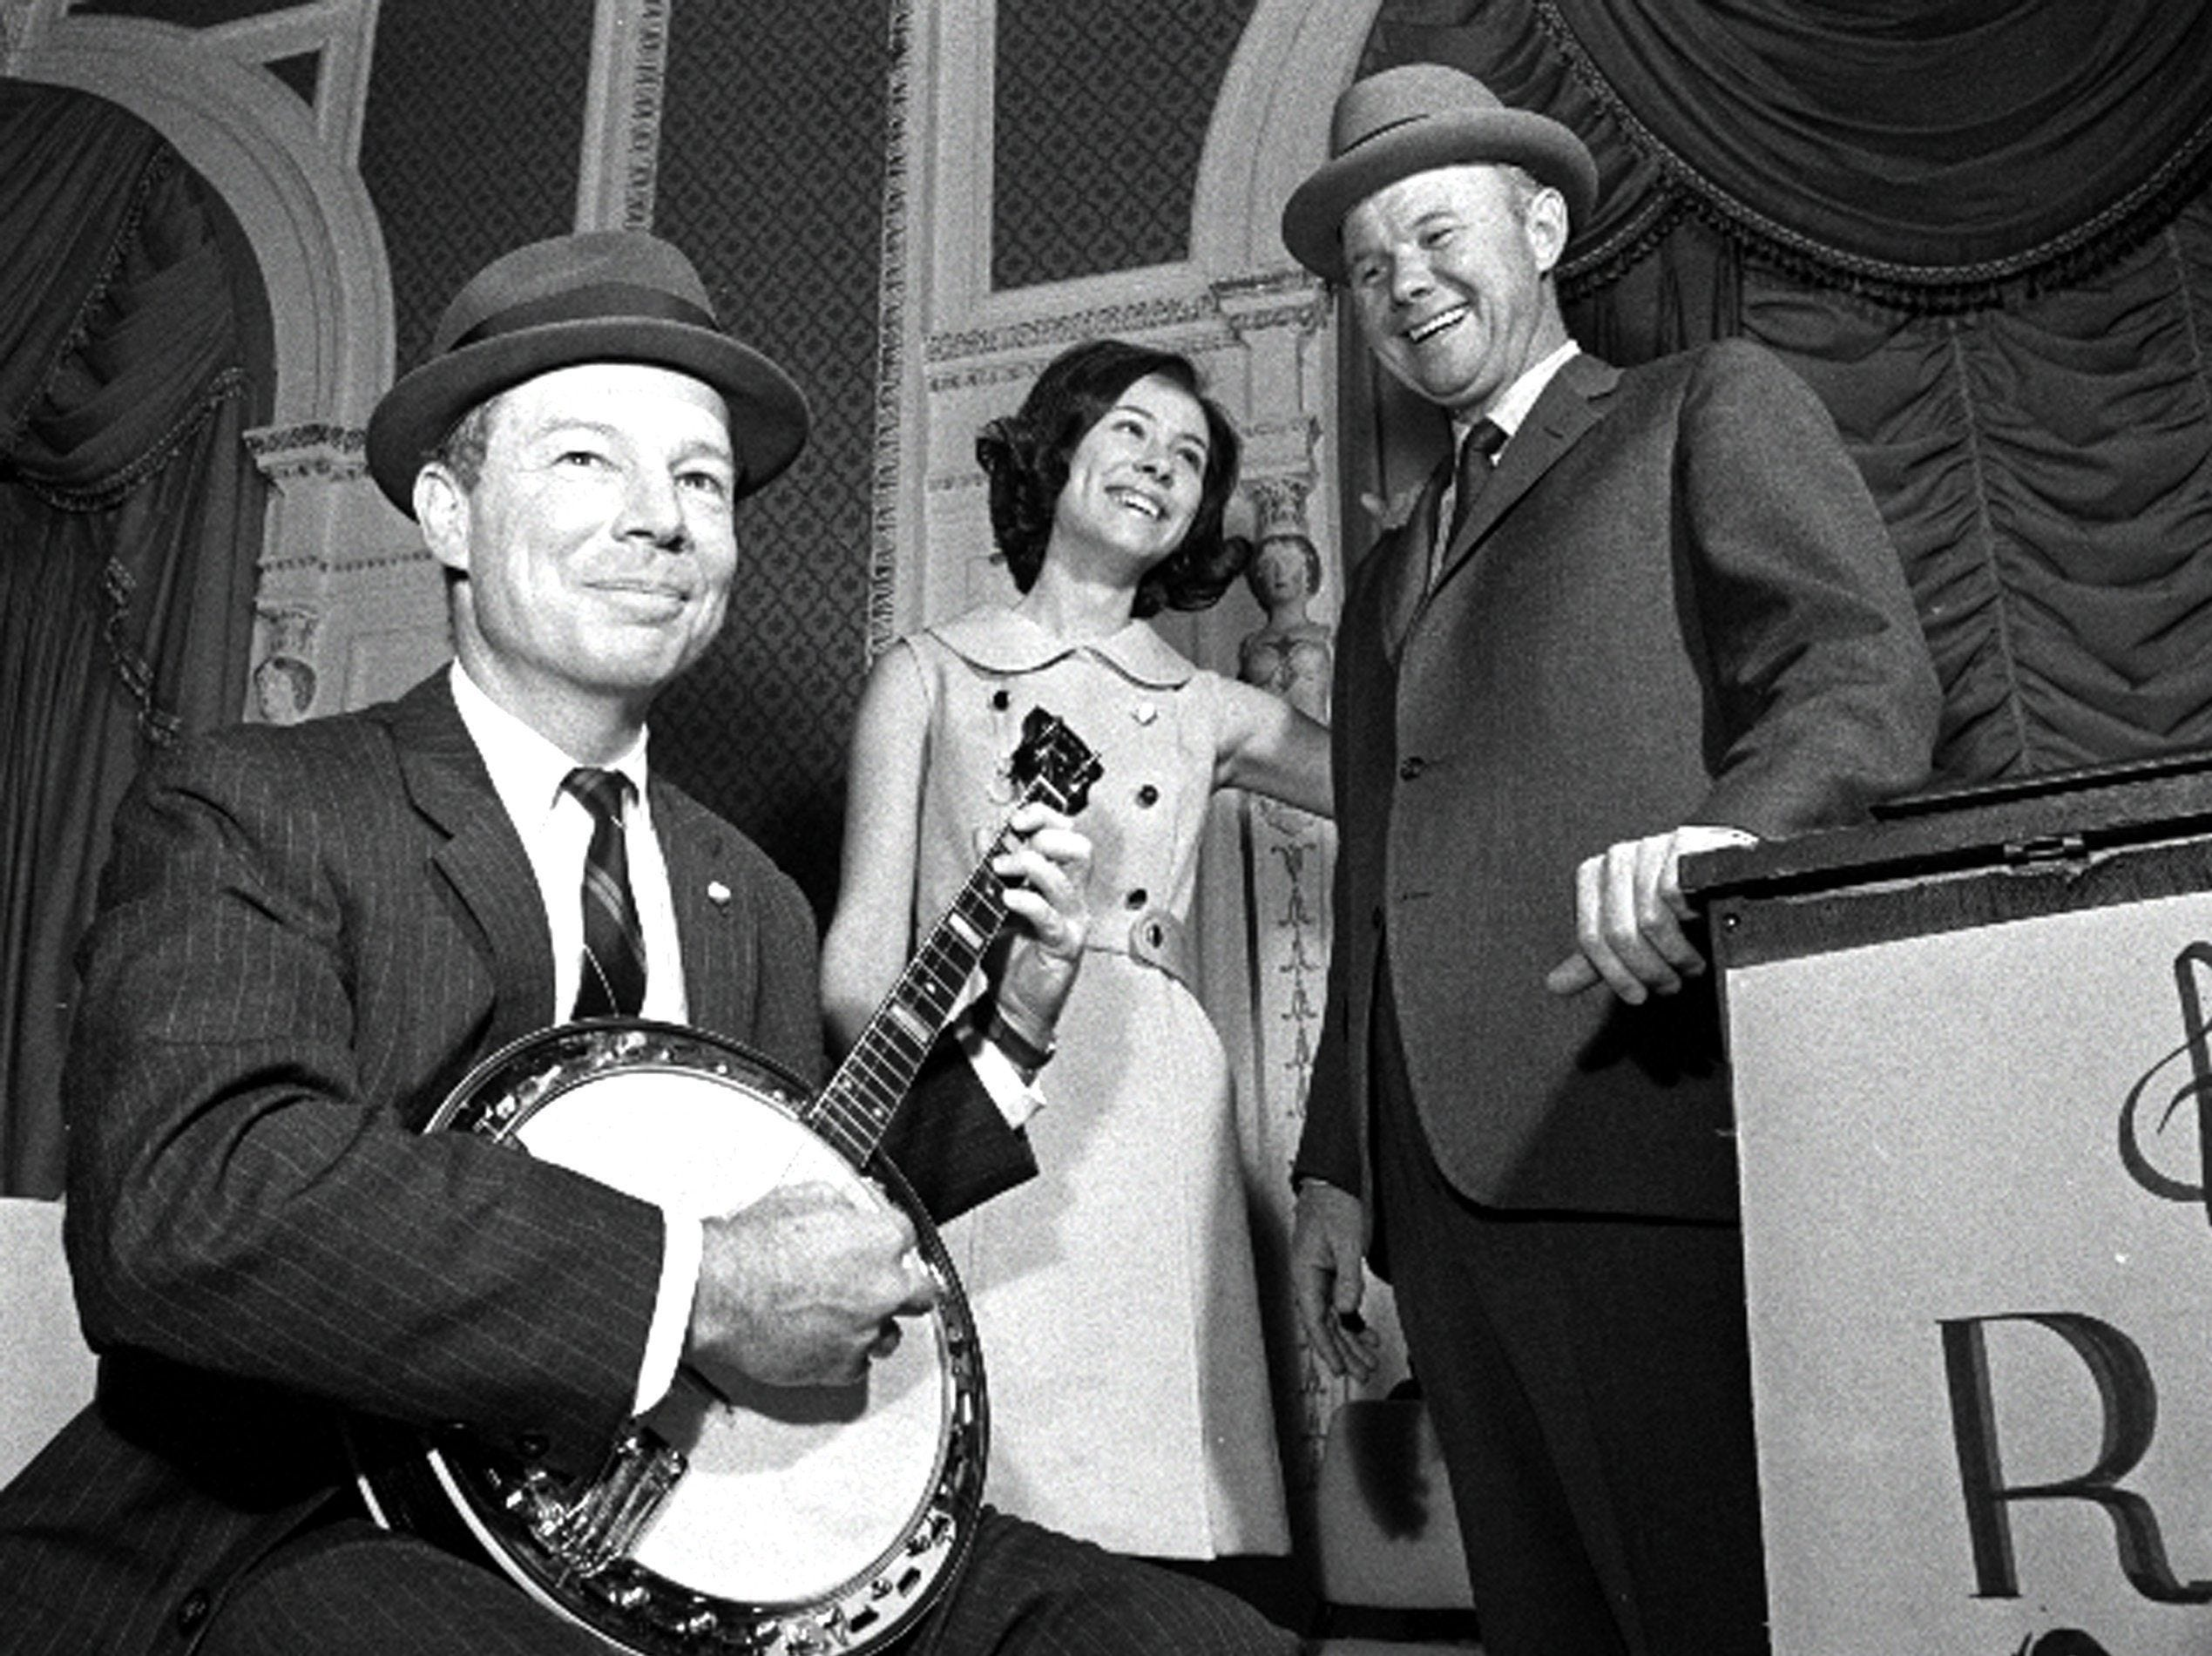 S. Toof Brown Jr., left, president of the Cotton Carnival Association, got the evening in tune at the Crown and Sceptre kickoff dinner at the Sheraton-Peabody on Jan 8, 1969. With him are Memphis Junior Miss Betty Ann Hunt and John Starks, co-chairman. The dinner marked the beginning of the carnival fund drive.